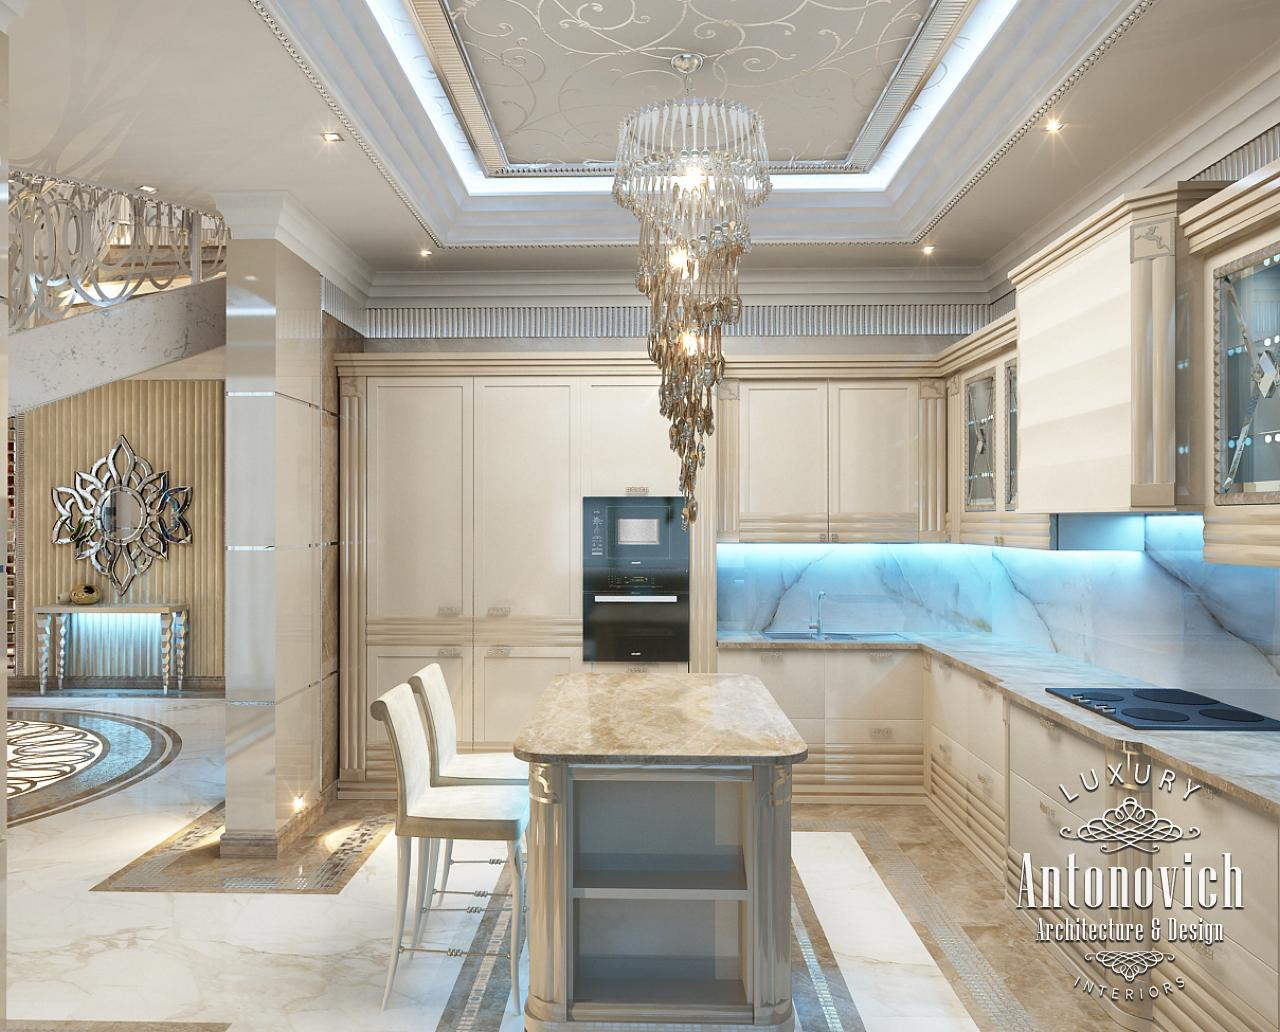 Luxury antonovich design uae luxury interior design dubai for Interior desings